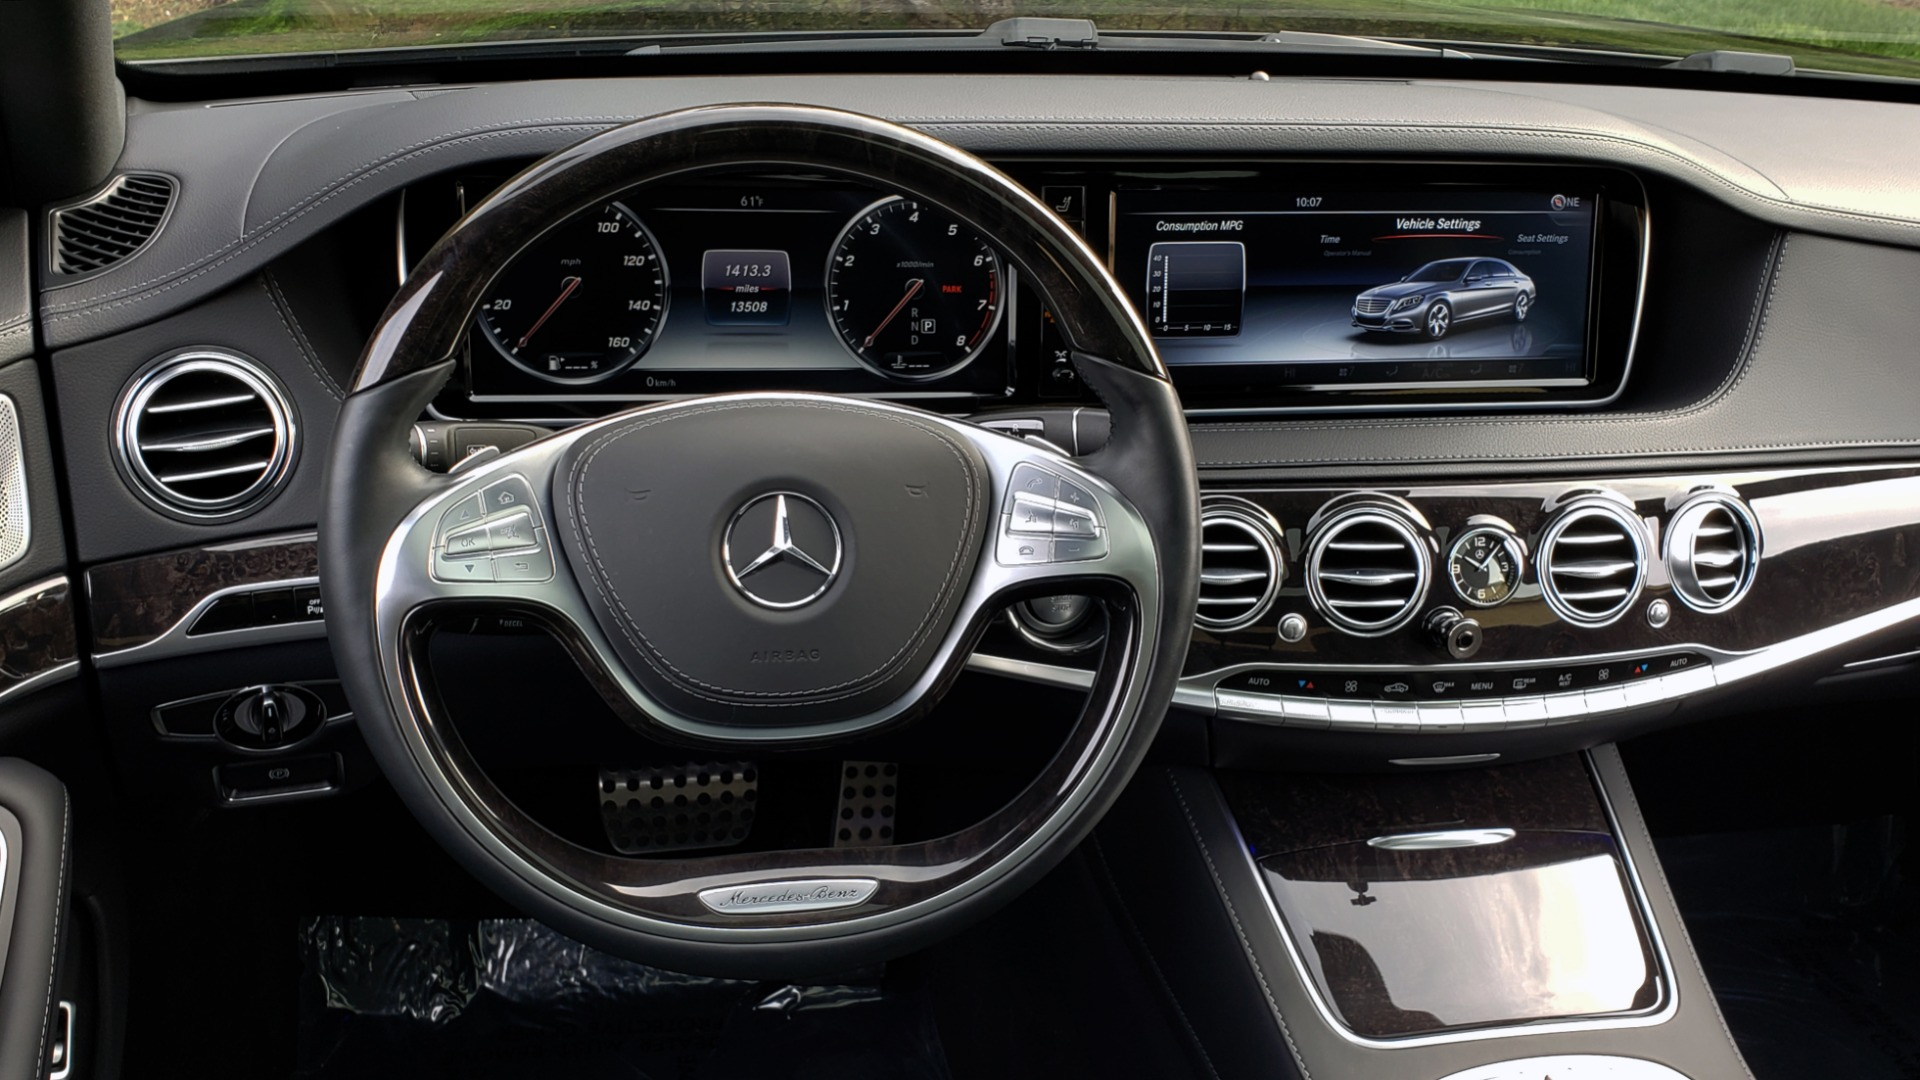 Used 2017 Mercedes-Benz S-CLASS S 550 4MATIC SPORT / PREM PKG / WARMTH & COMFORT / KEYLESS-GO for sale Sold at Formula Imports in Charlotte NC 28227 44